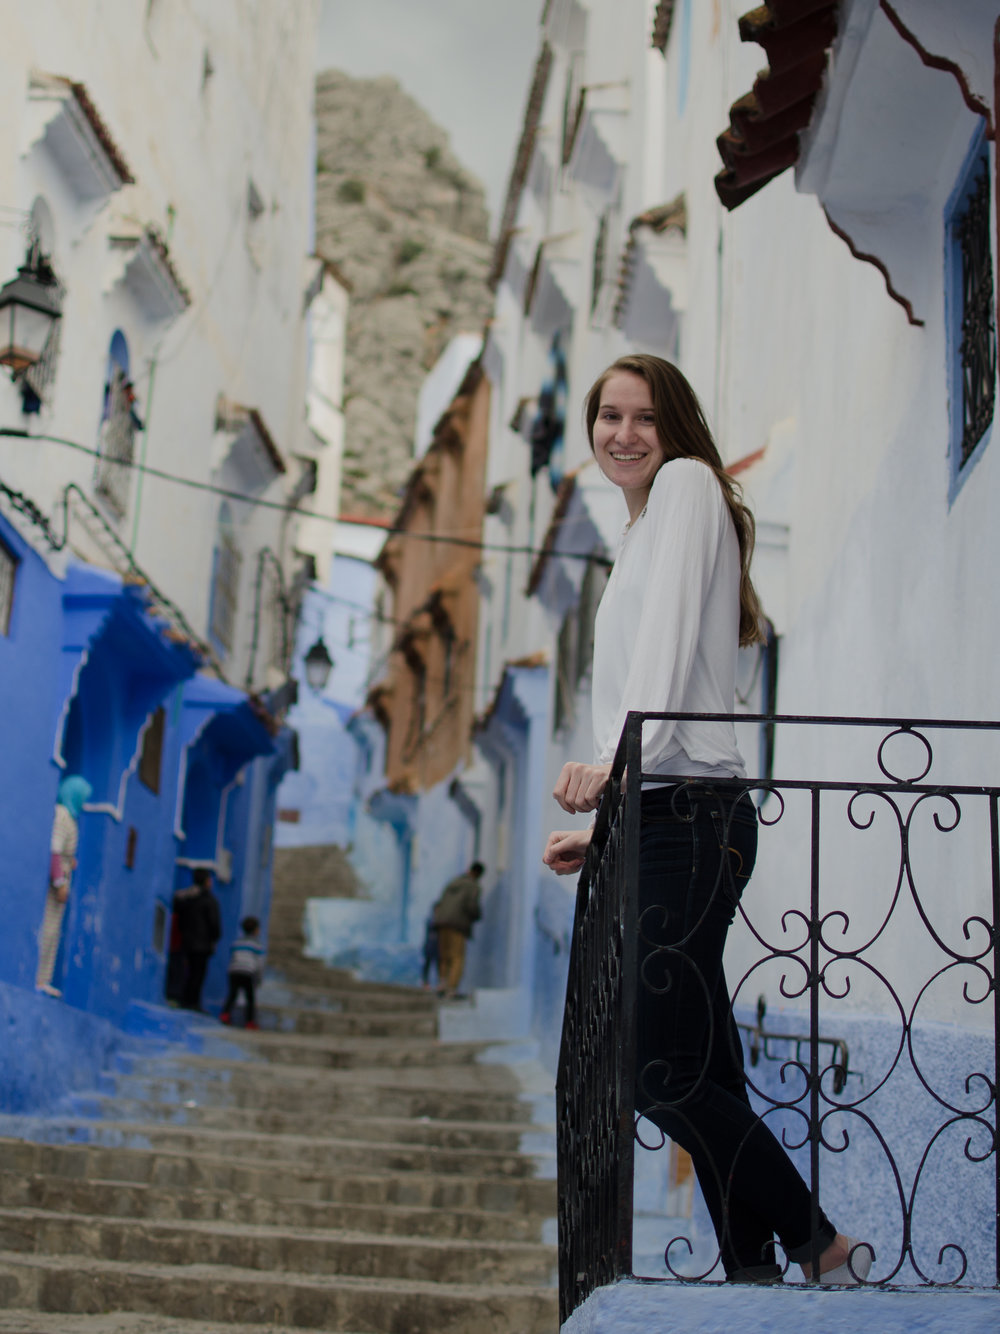 Make sure to visit Chefchaouen on a trip through Morocco